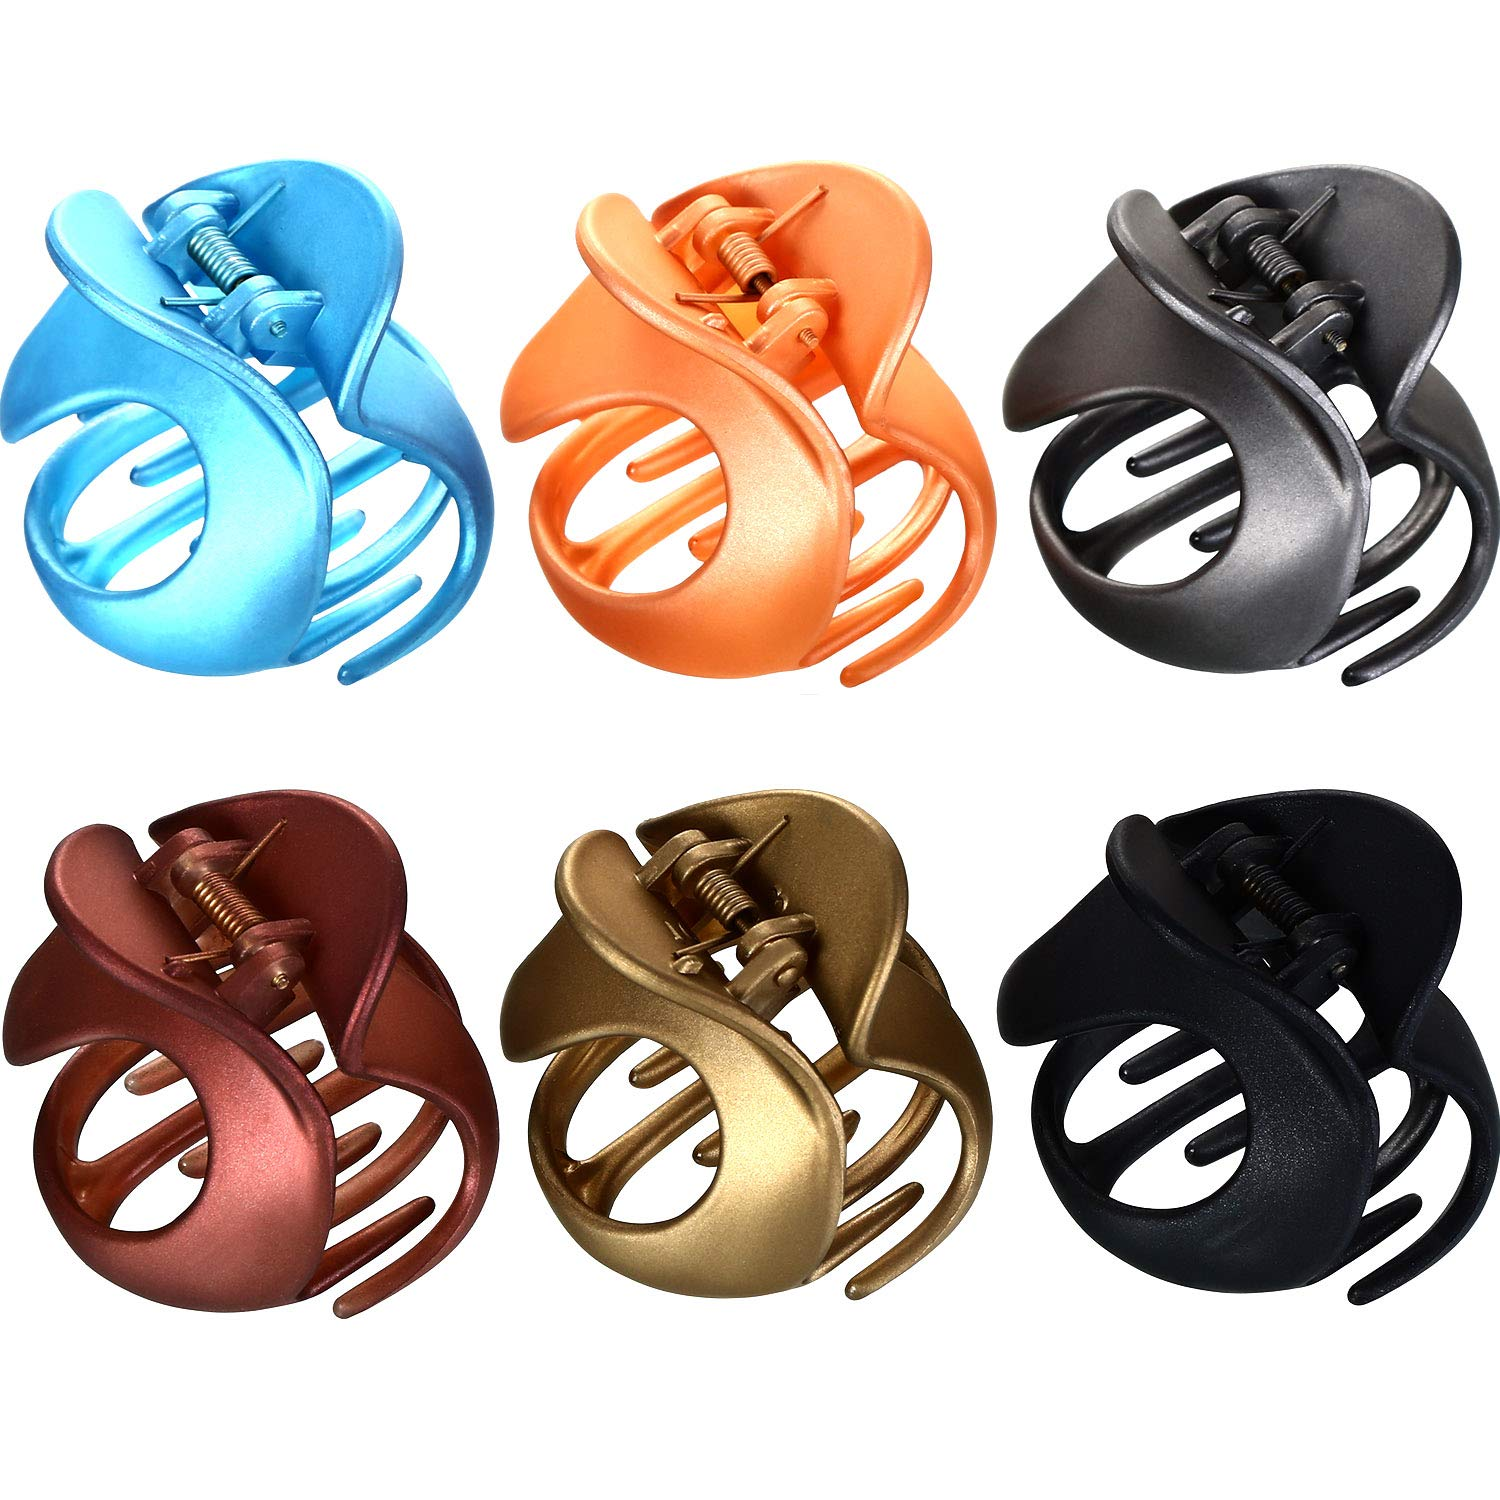 6 Pieces Non Slip Hair Clamps Plastic Jaw Clips Vintage Irregular Claw Clips Simple Hair Accessories for Women Girls, 6 Colors Tatuo